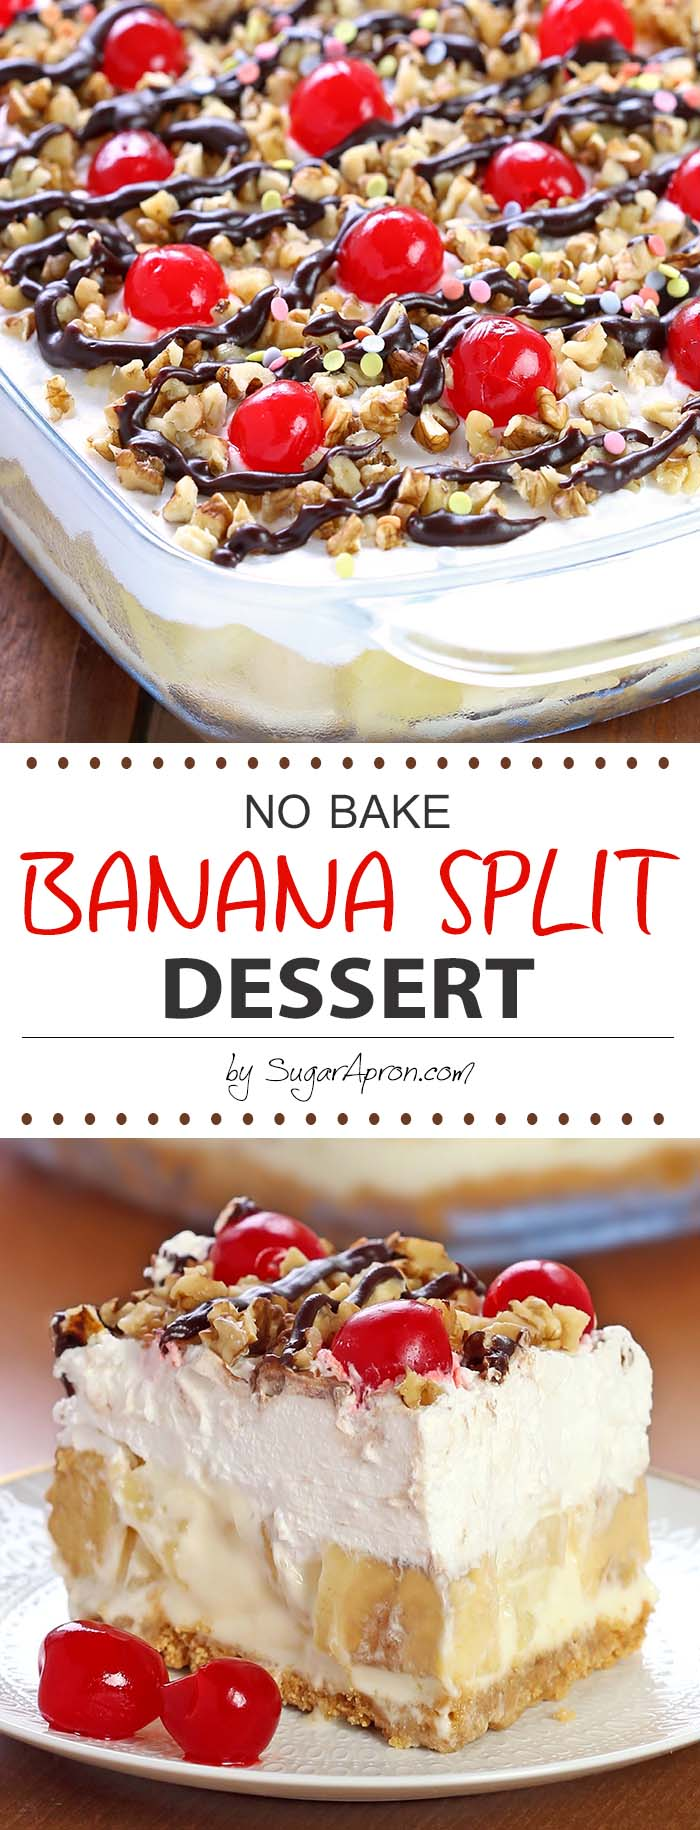 Delicious Rich And Creamy With All The Ingredients You Love In A Banana Split